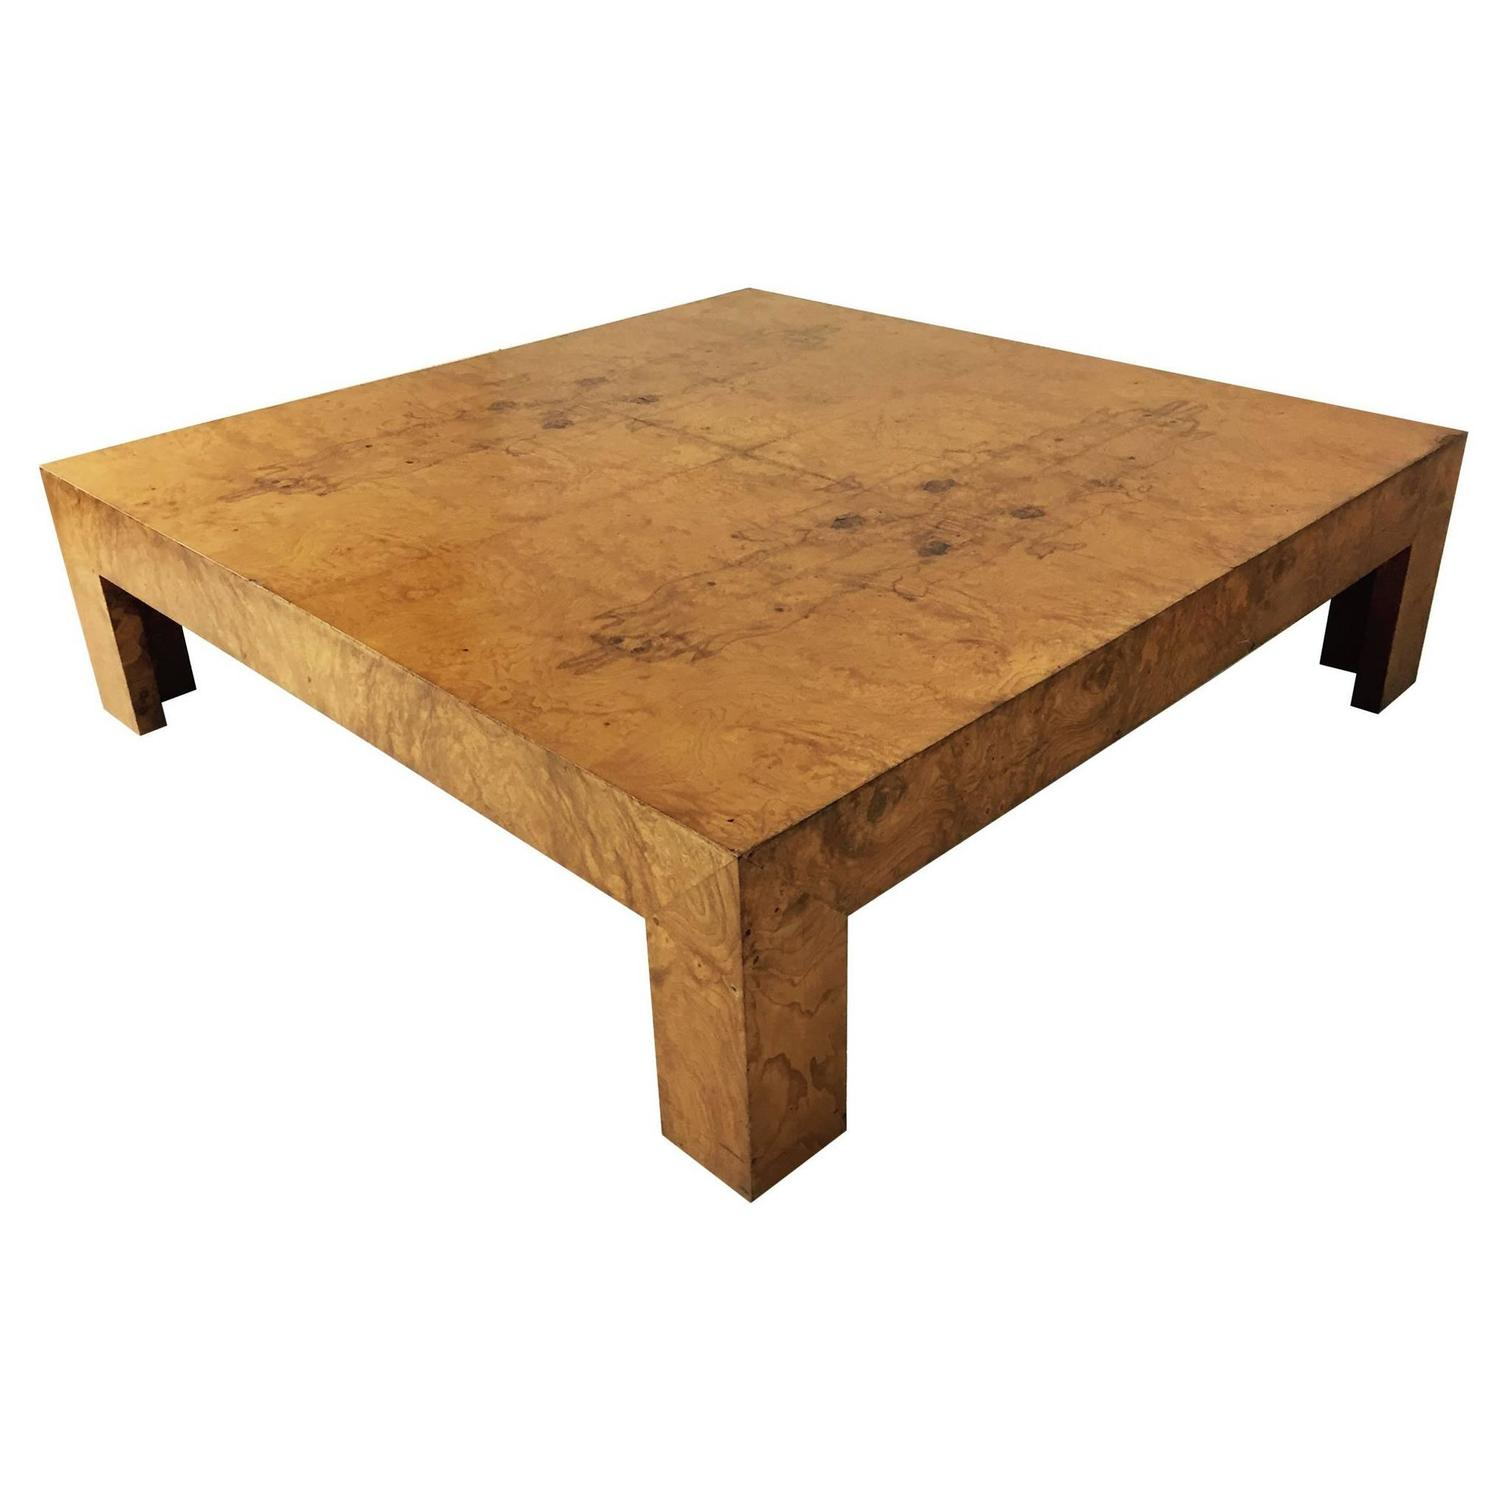 Monumental Milo Baughman Burl Wood Coffee Table at 1stdibs